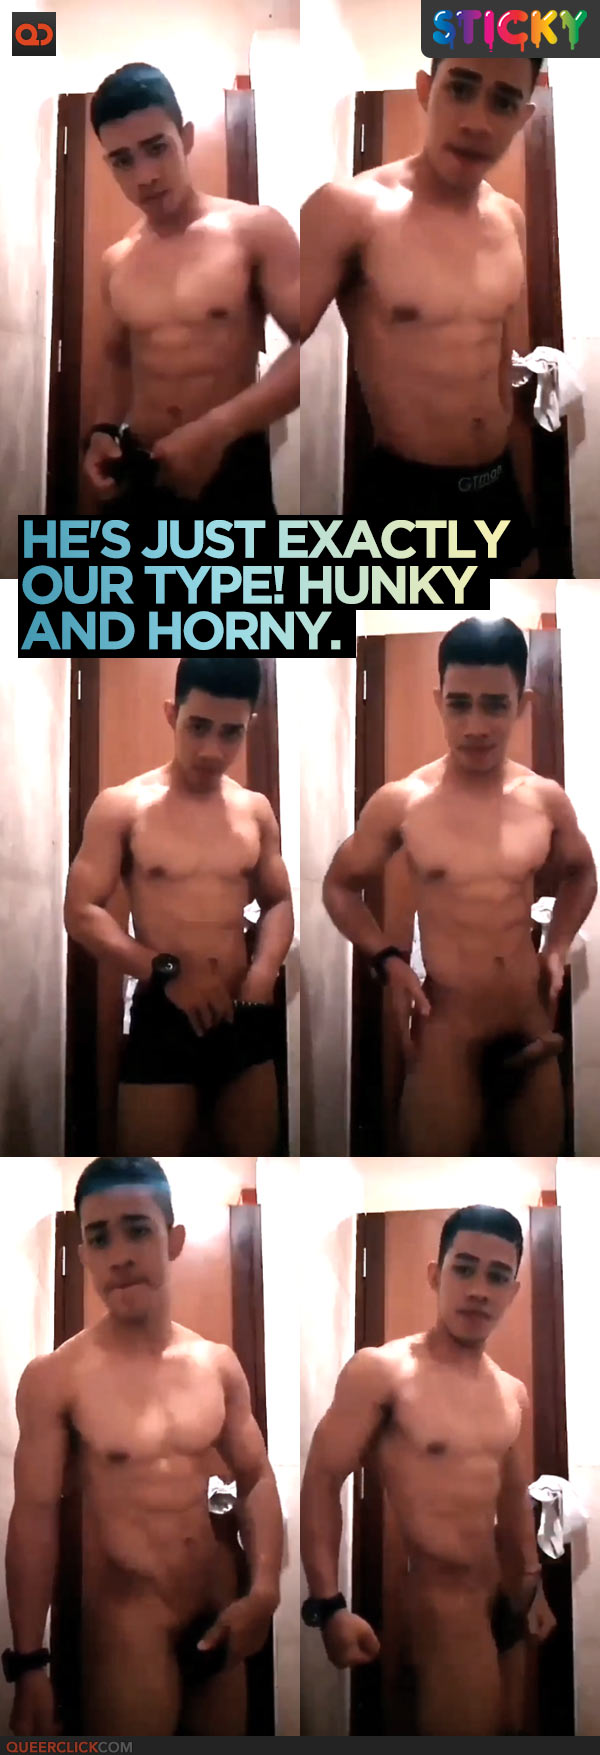 He's Just Exactly Our Type! Hunky and Horny.